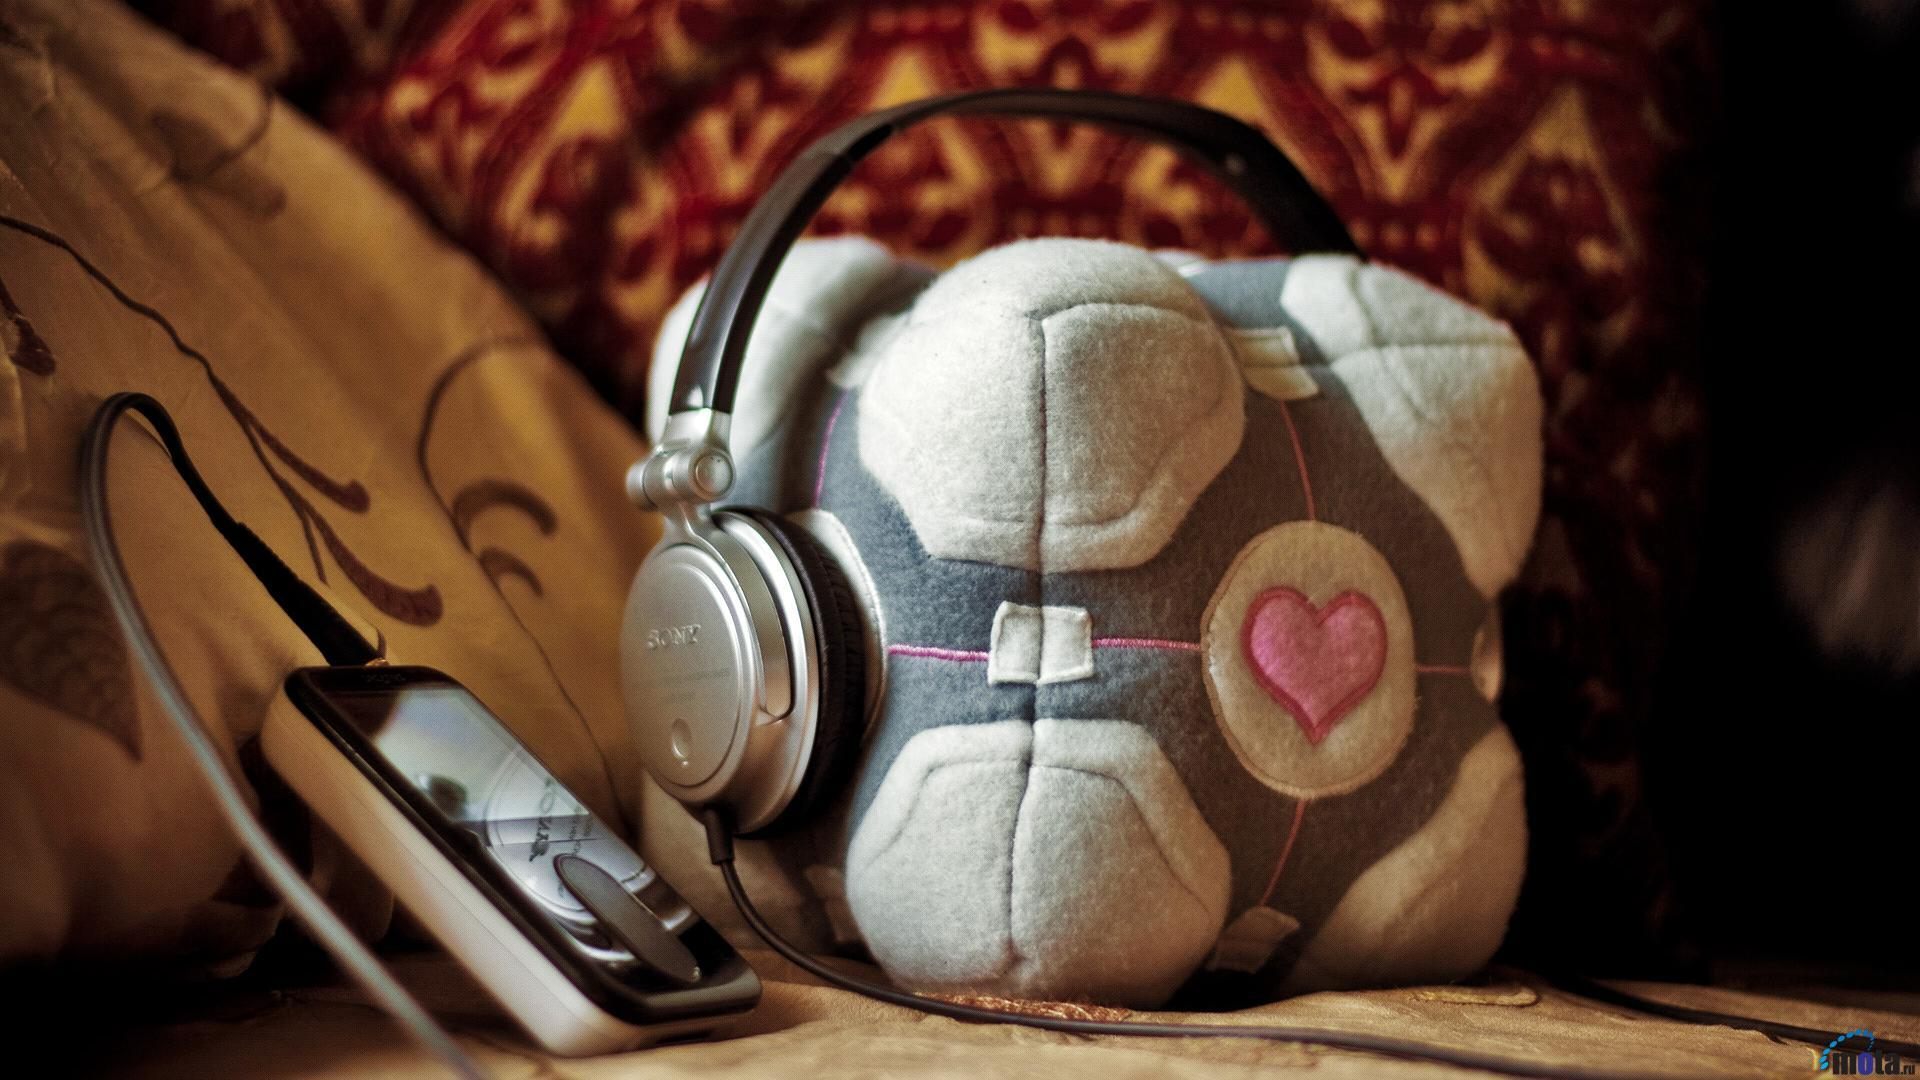 headphones Portal Companion Cube HD Wallpaper